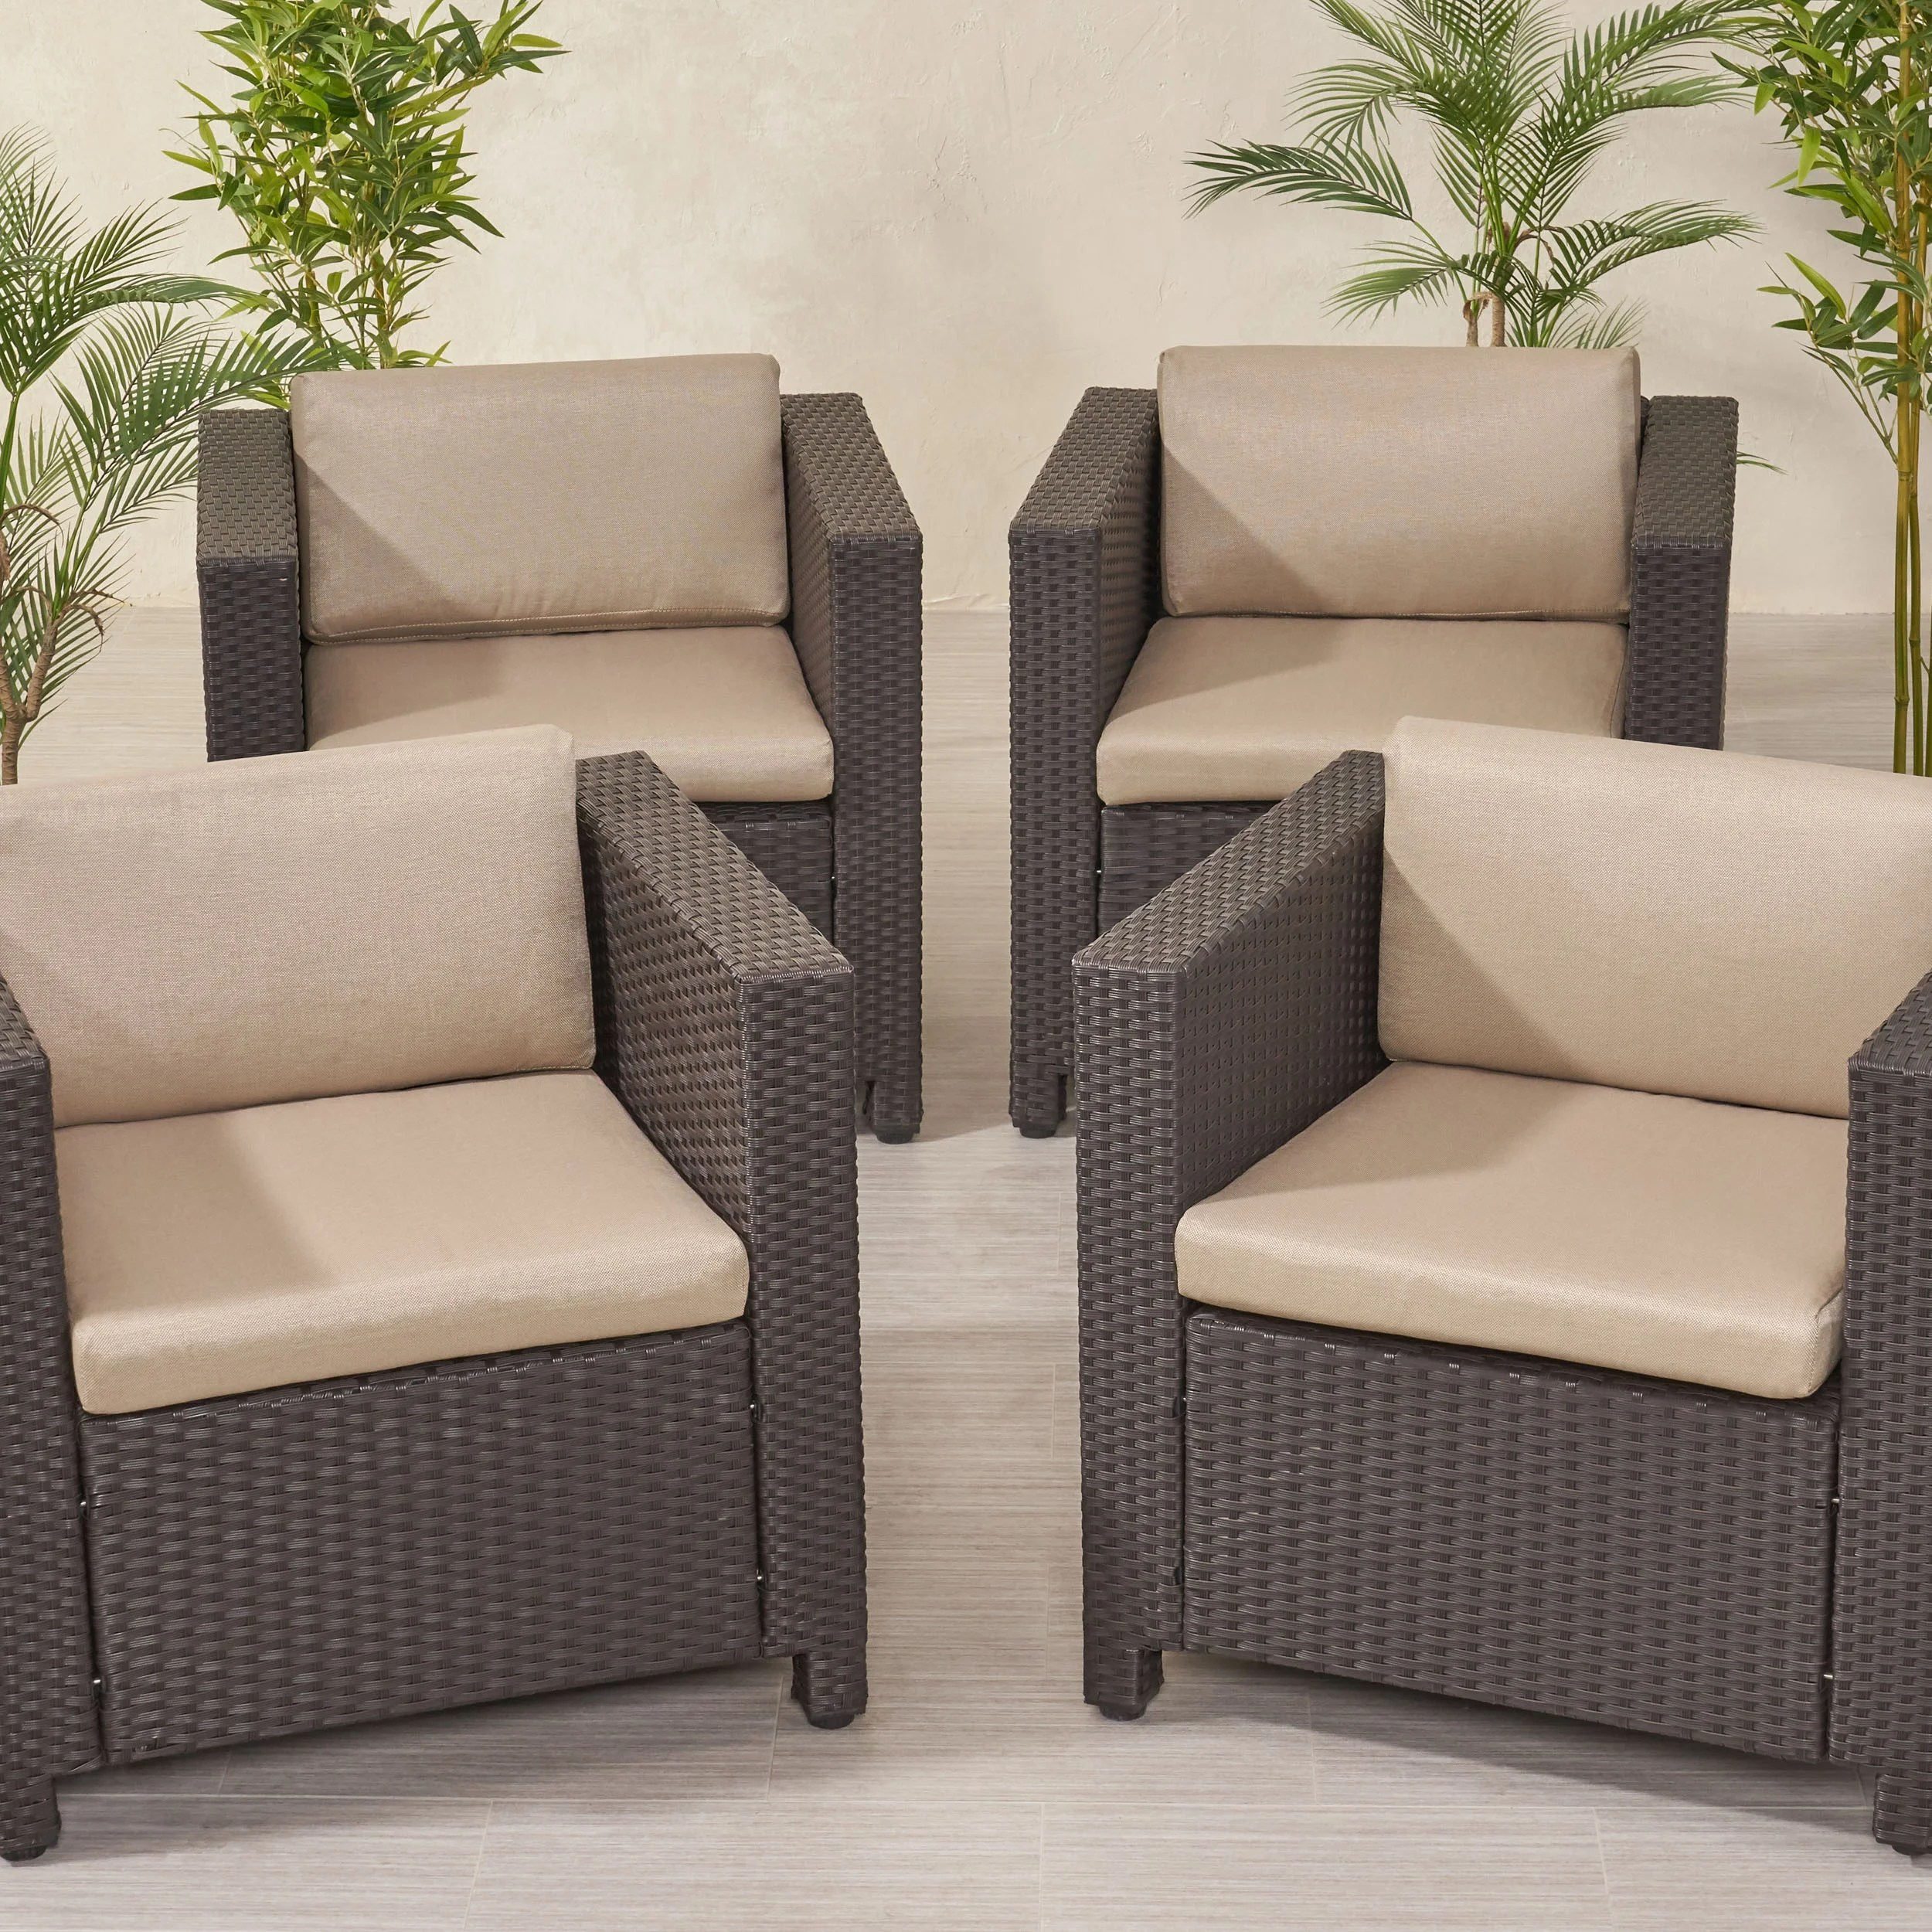 4 Water Repellent Finish Patio Furniture Cushions You Ll Love In 2021 Wayfair